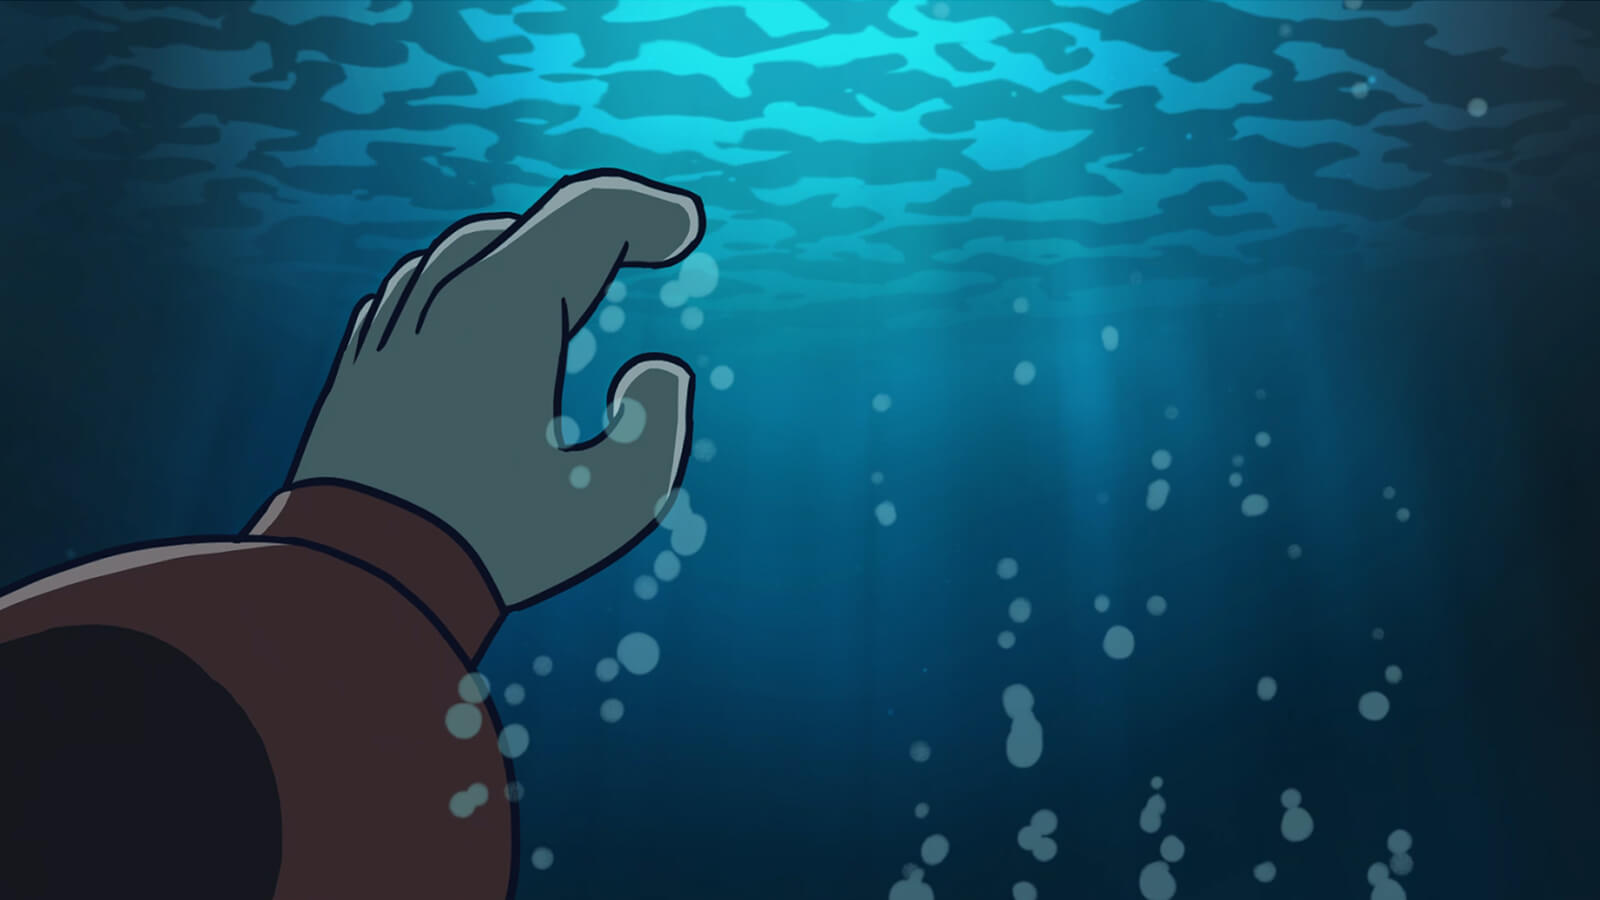 A hand submerged in the ocean reaching up for the surface.